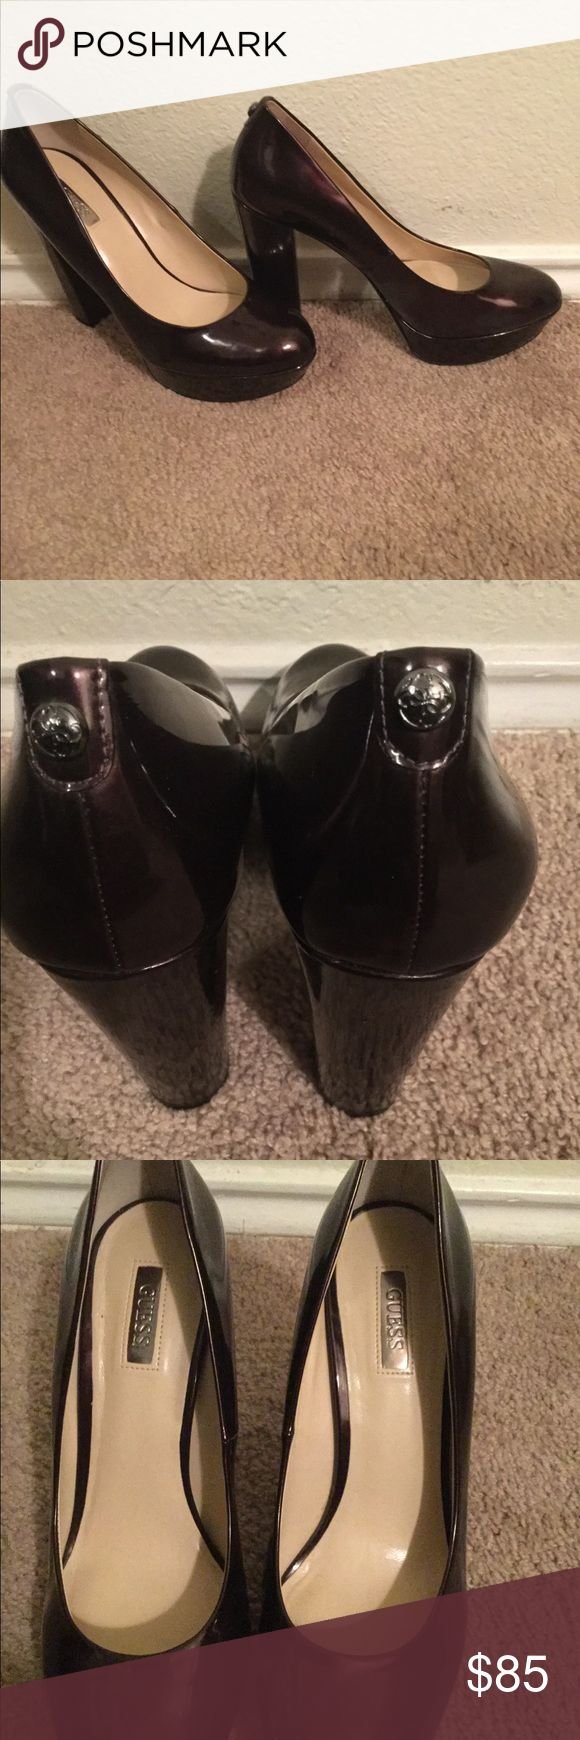 Guess Shoes These are gently used Guess shoes that have been used once. Extremely good condition Guess Shoes Heels